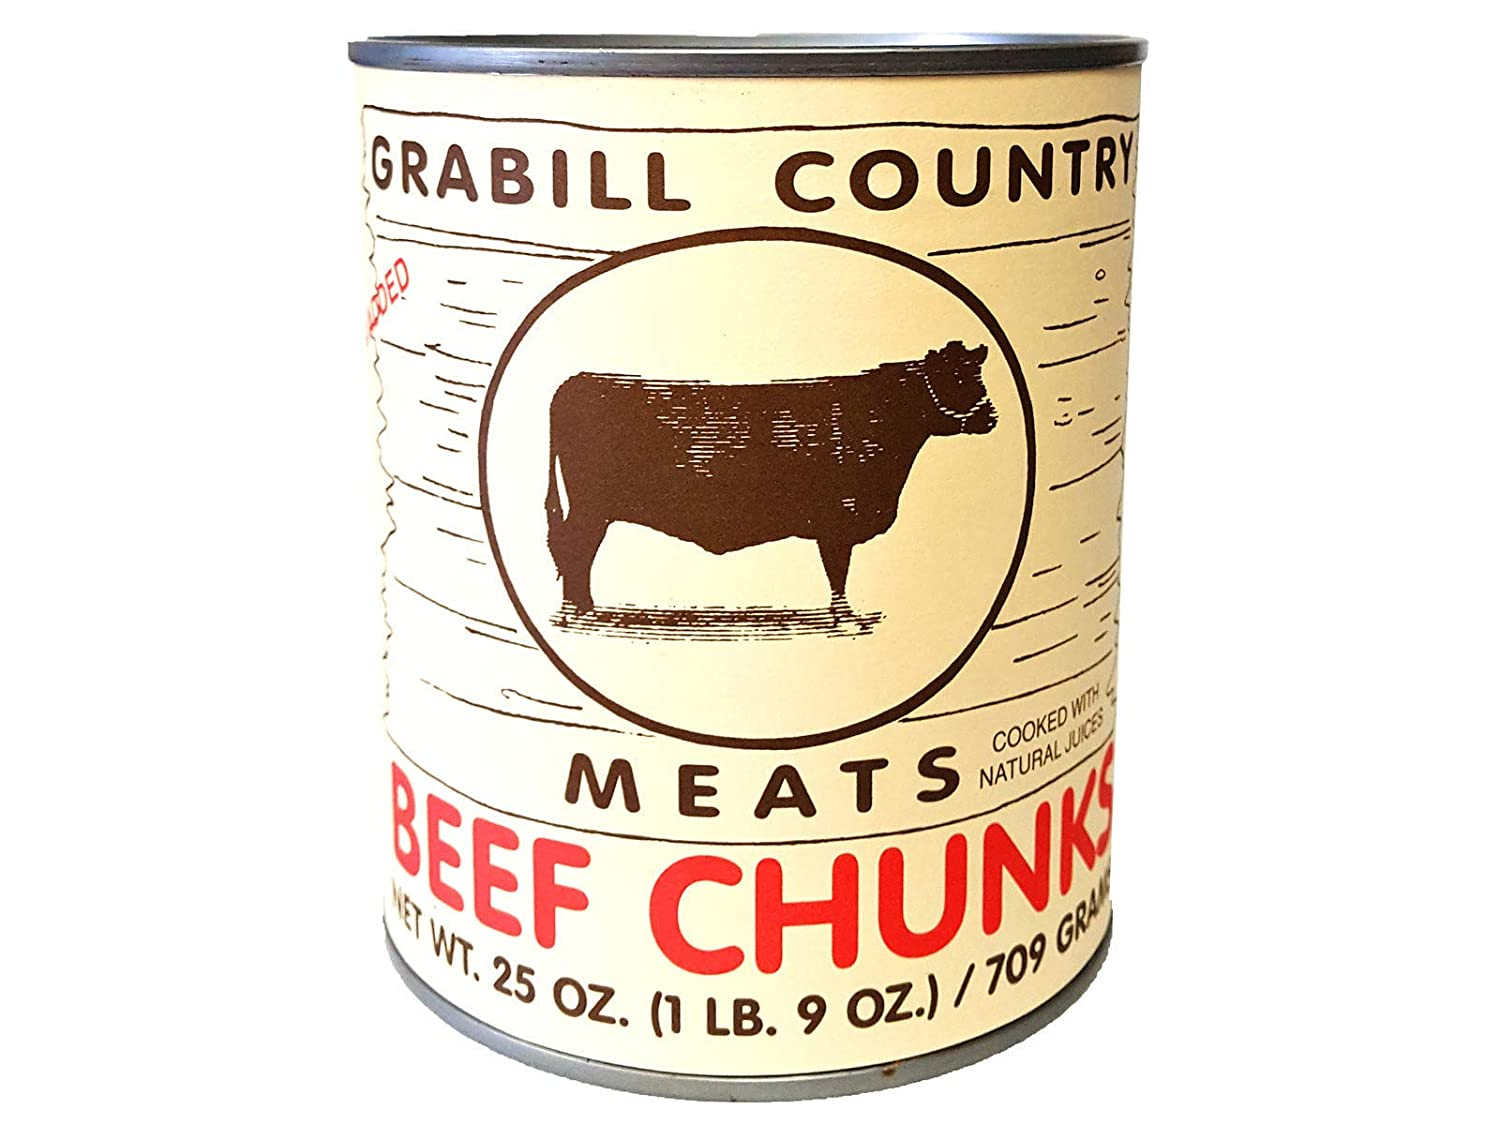 Grabill Country Meats Canned Meats, Variety Pack, Favorite Amish Food, 106 Oz.